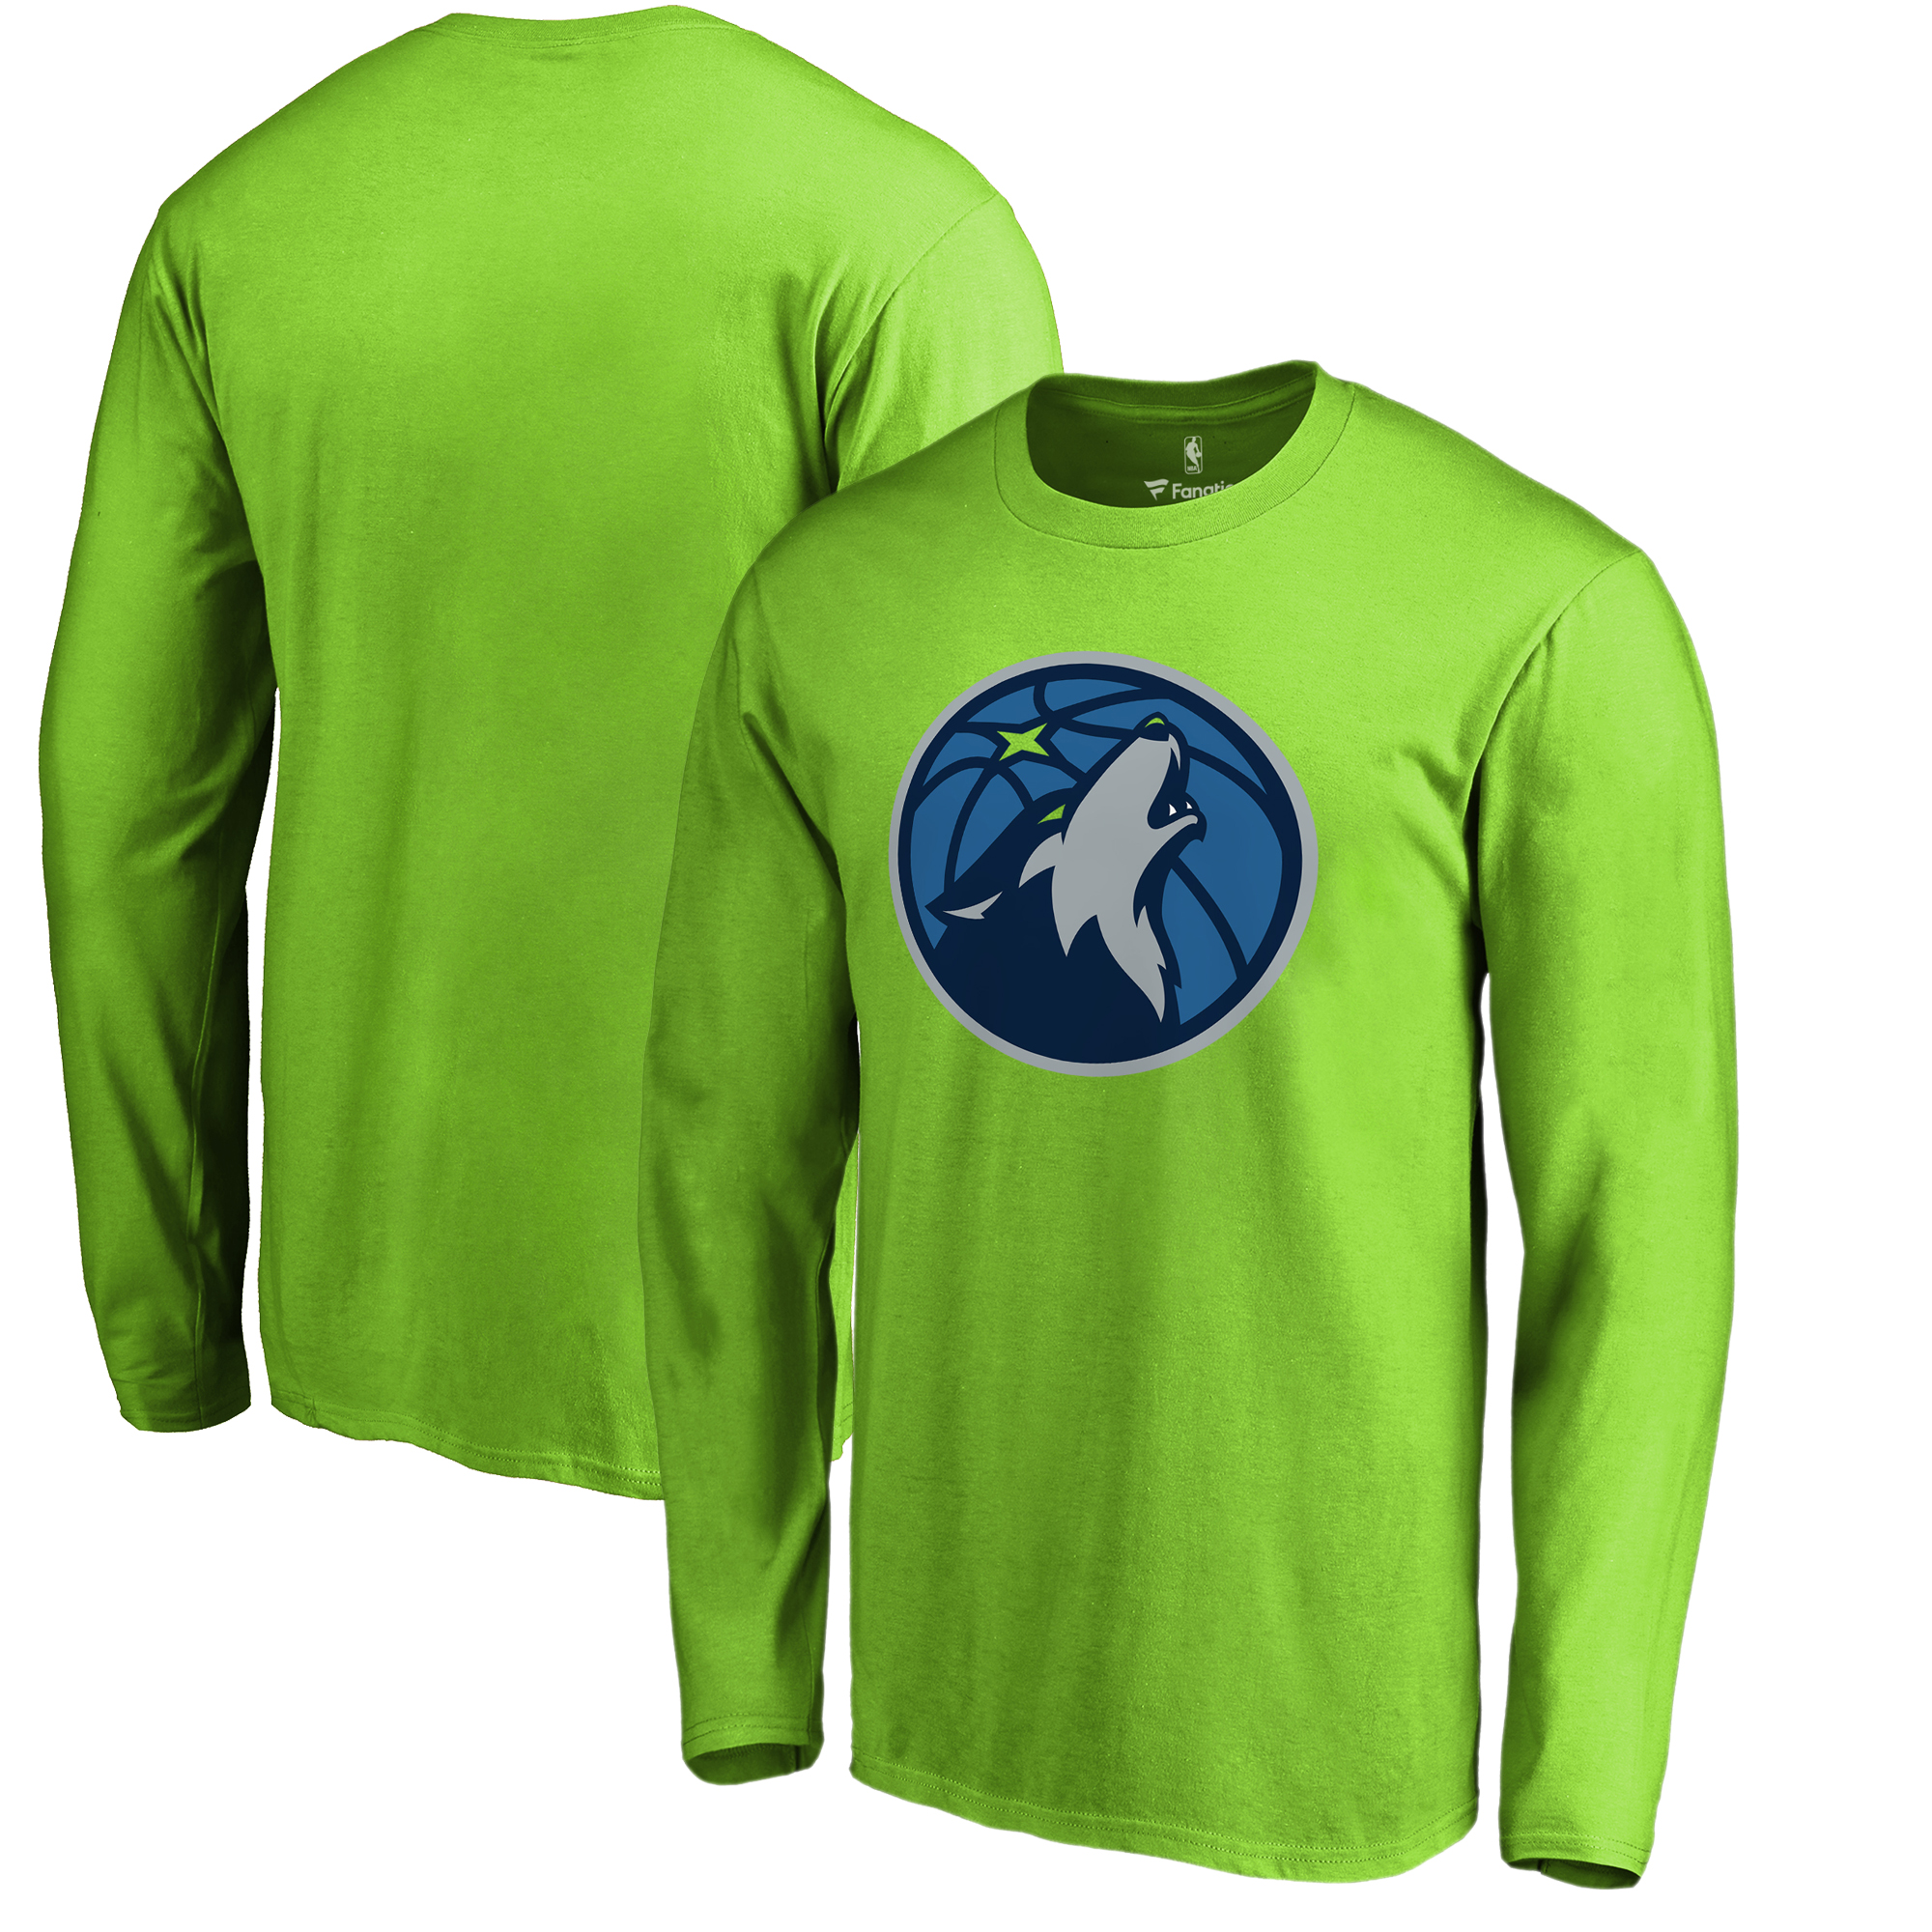 Minnesota Timberwolves Fanatics Branded Primary Logo Long Sleeve T-Shirt - Neon Green